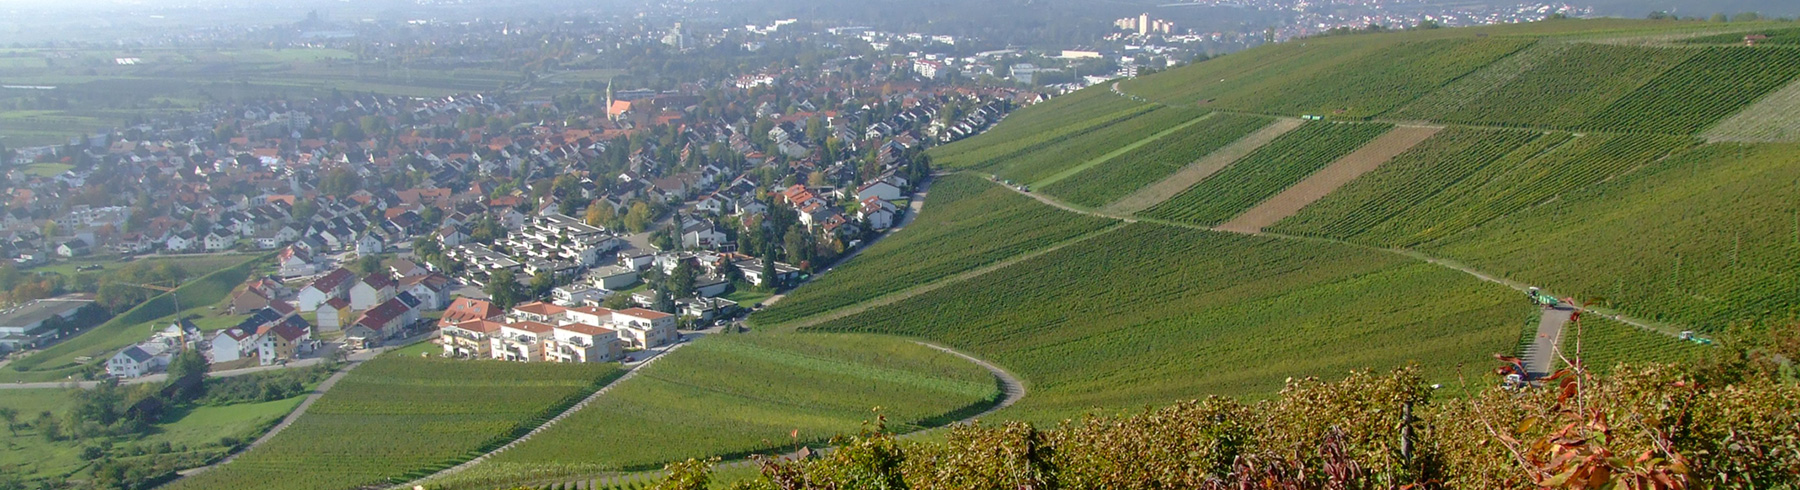 Beutelsbach_Panorma